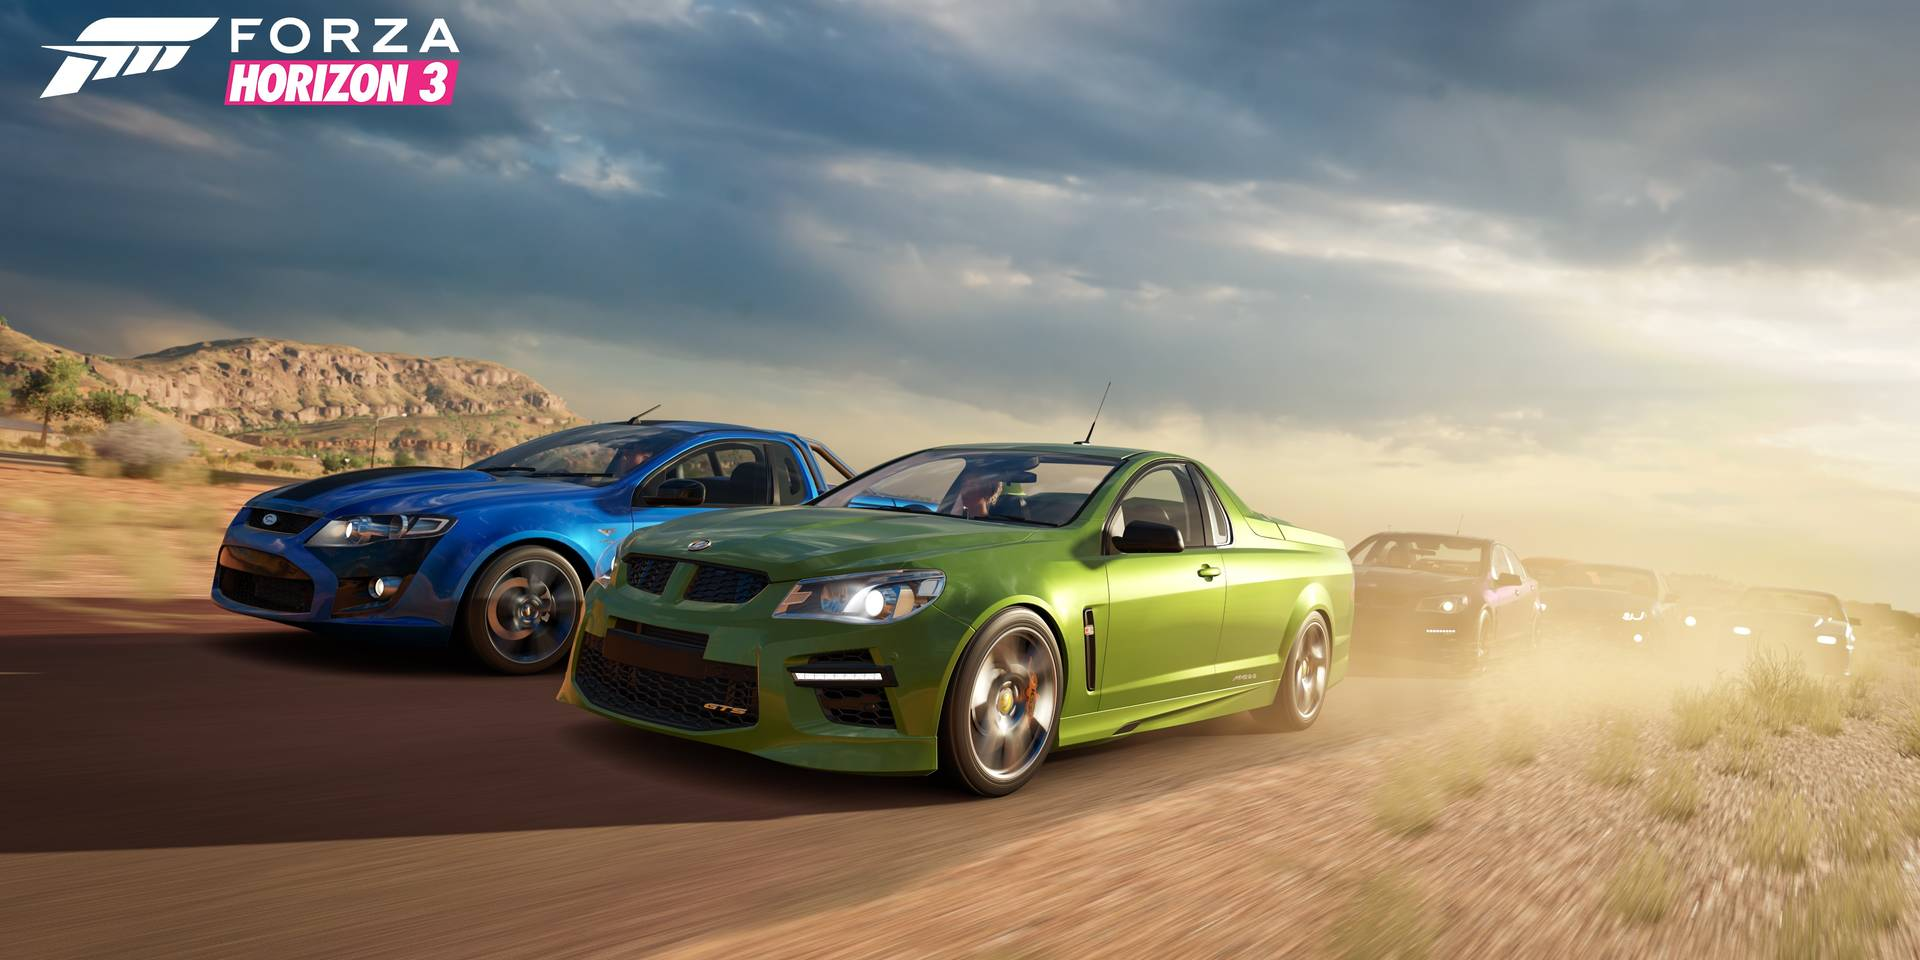 Forza Horizon 3 Demo Now Available On Xbox One With Online